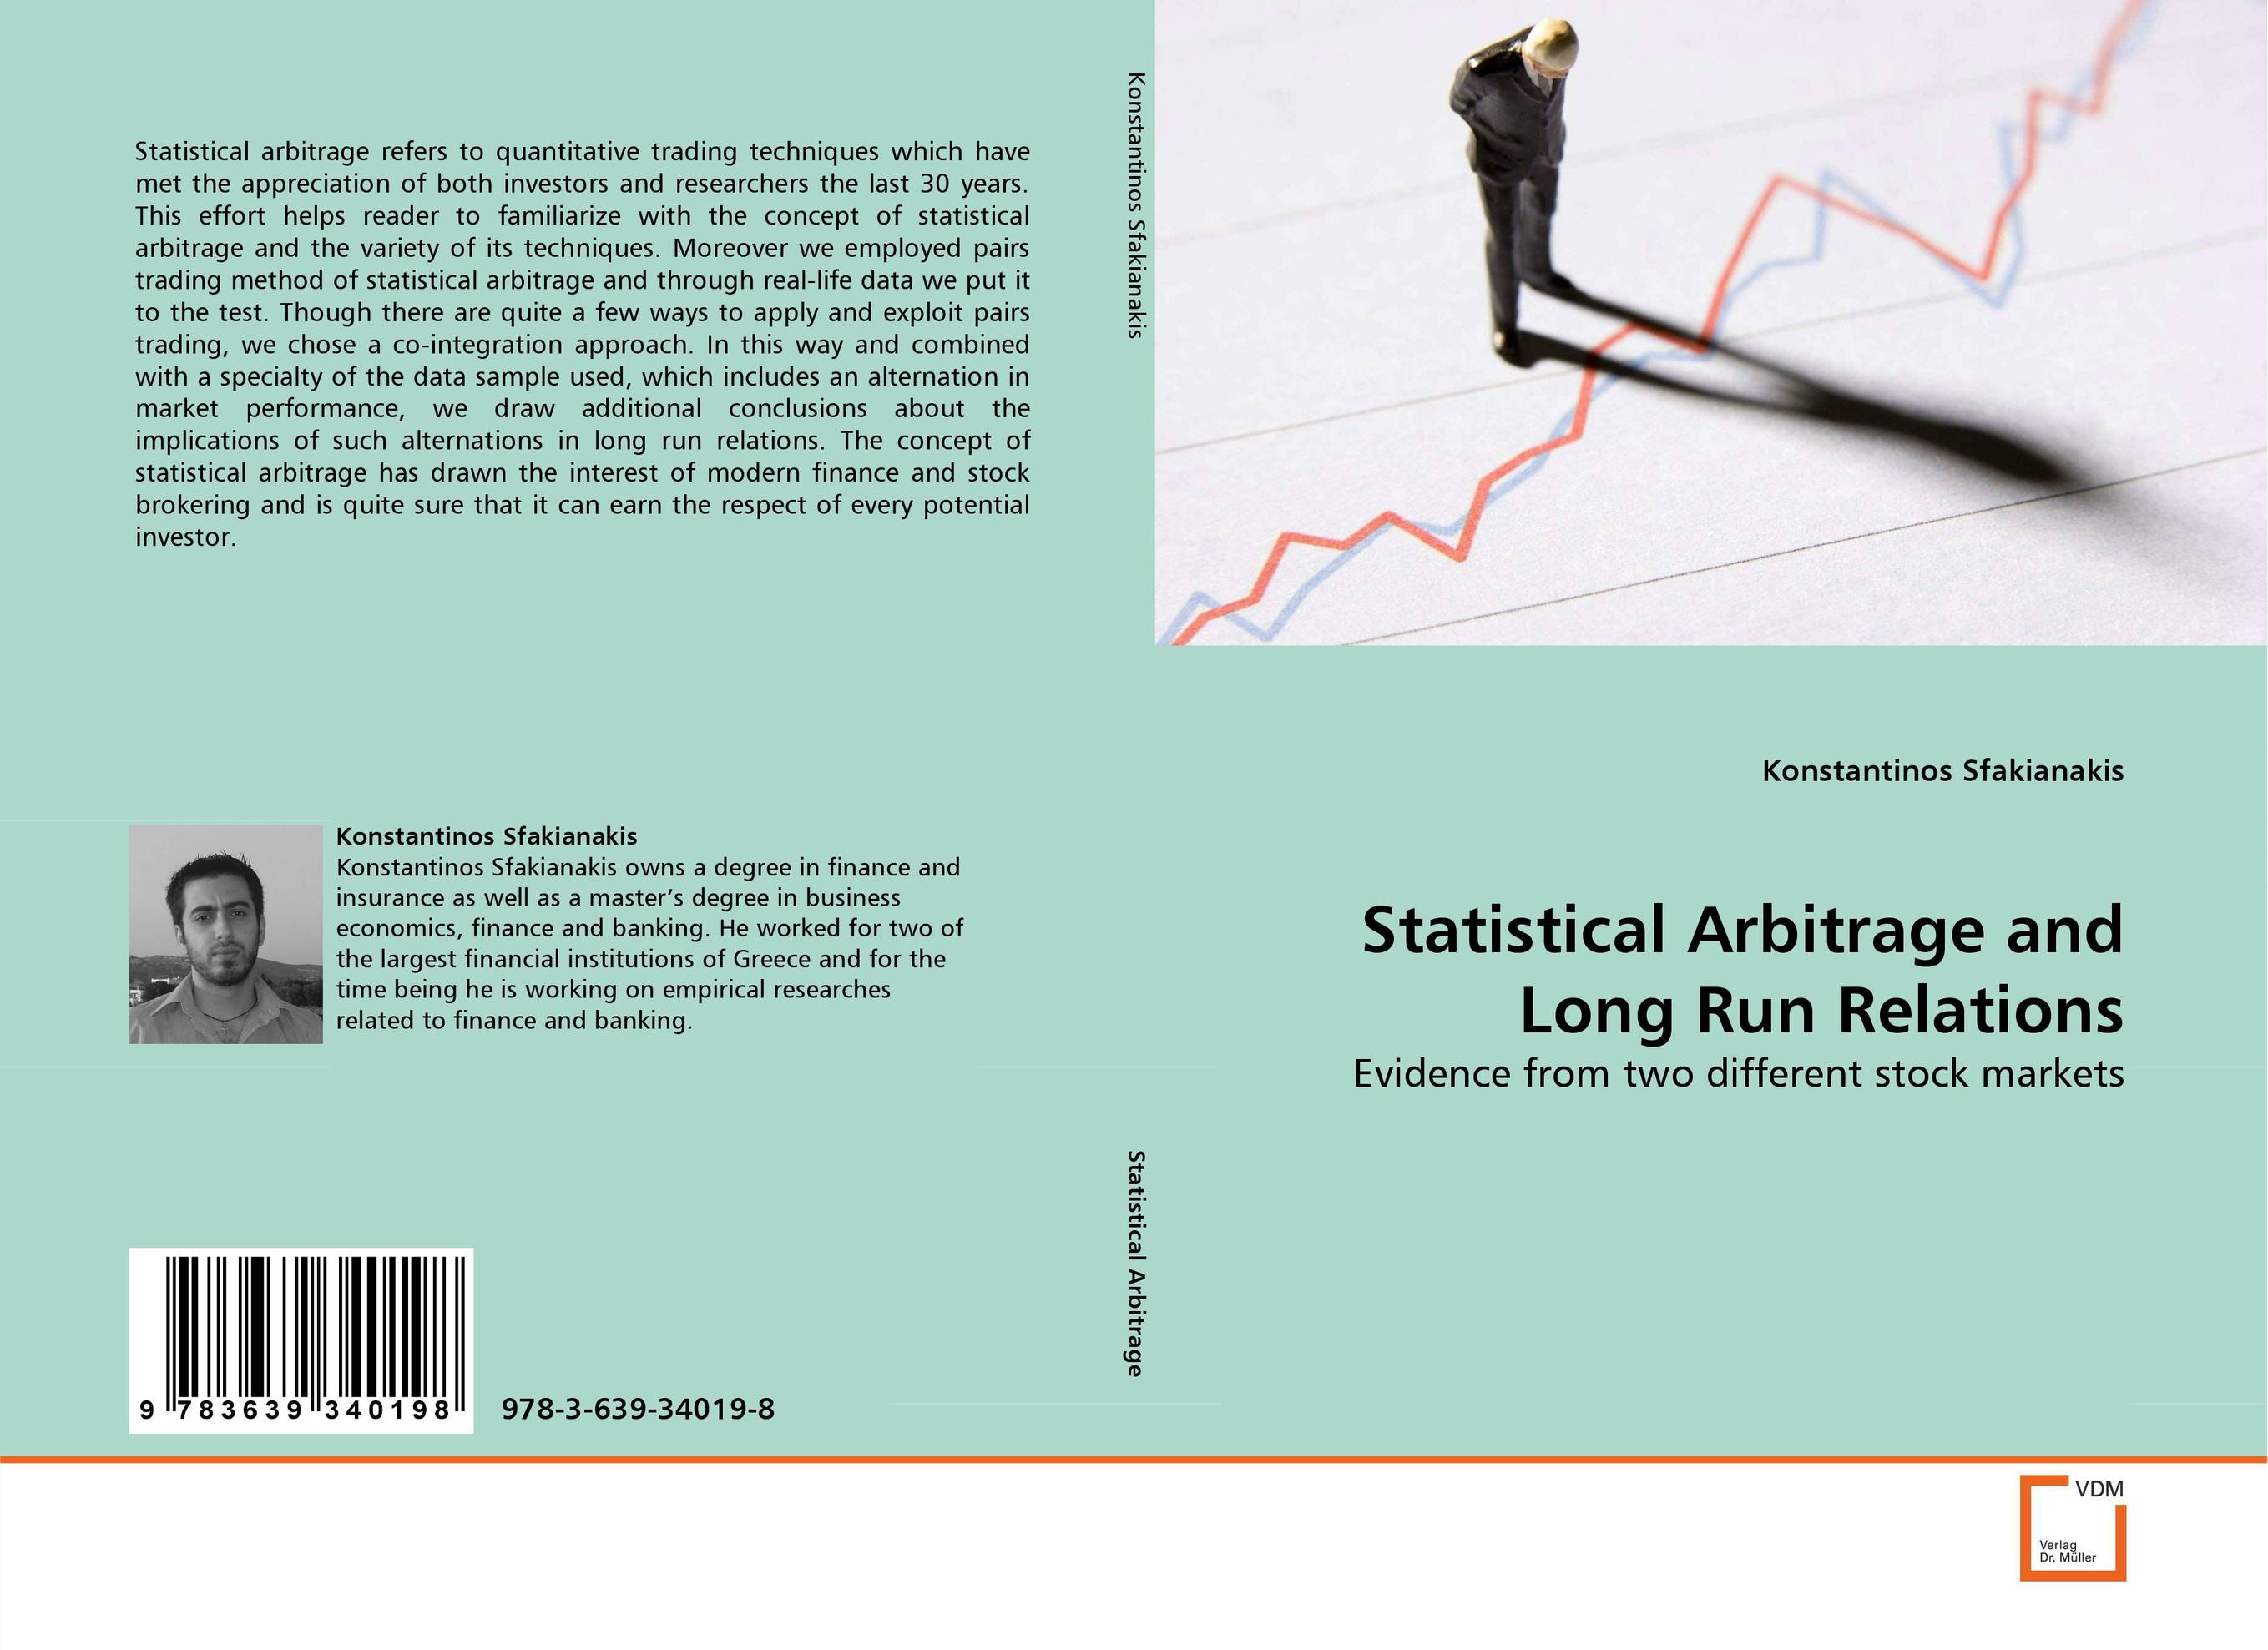 Statistical Arbitrage and Long Run Relations россия 23280055080 розетка малинка 55 80